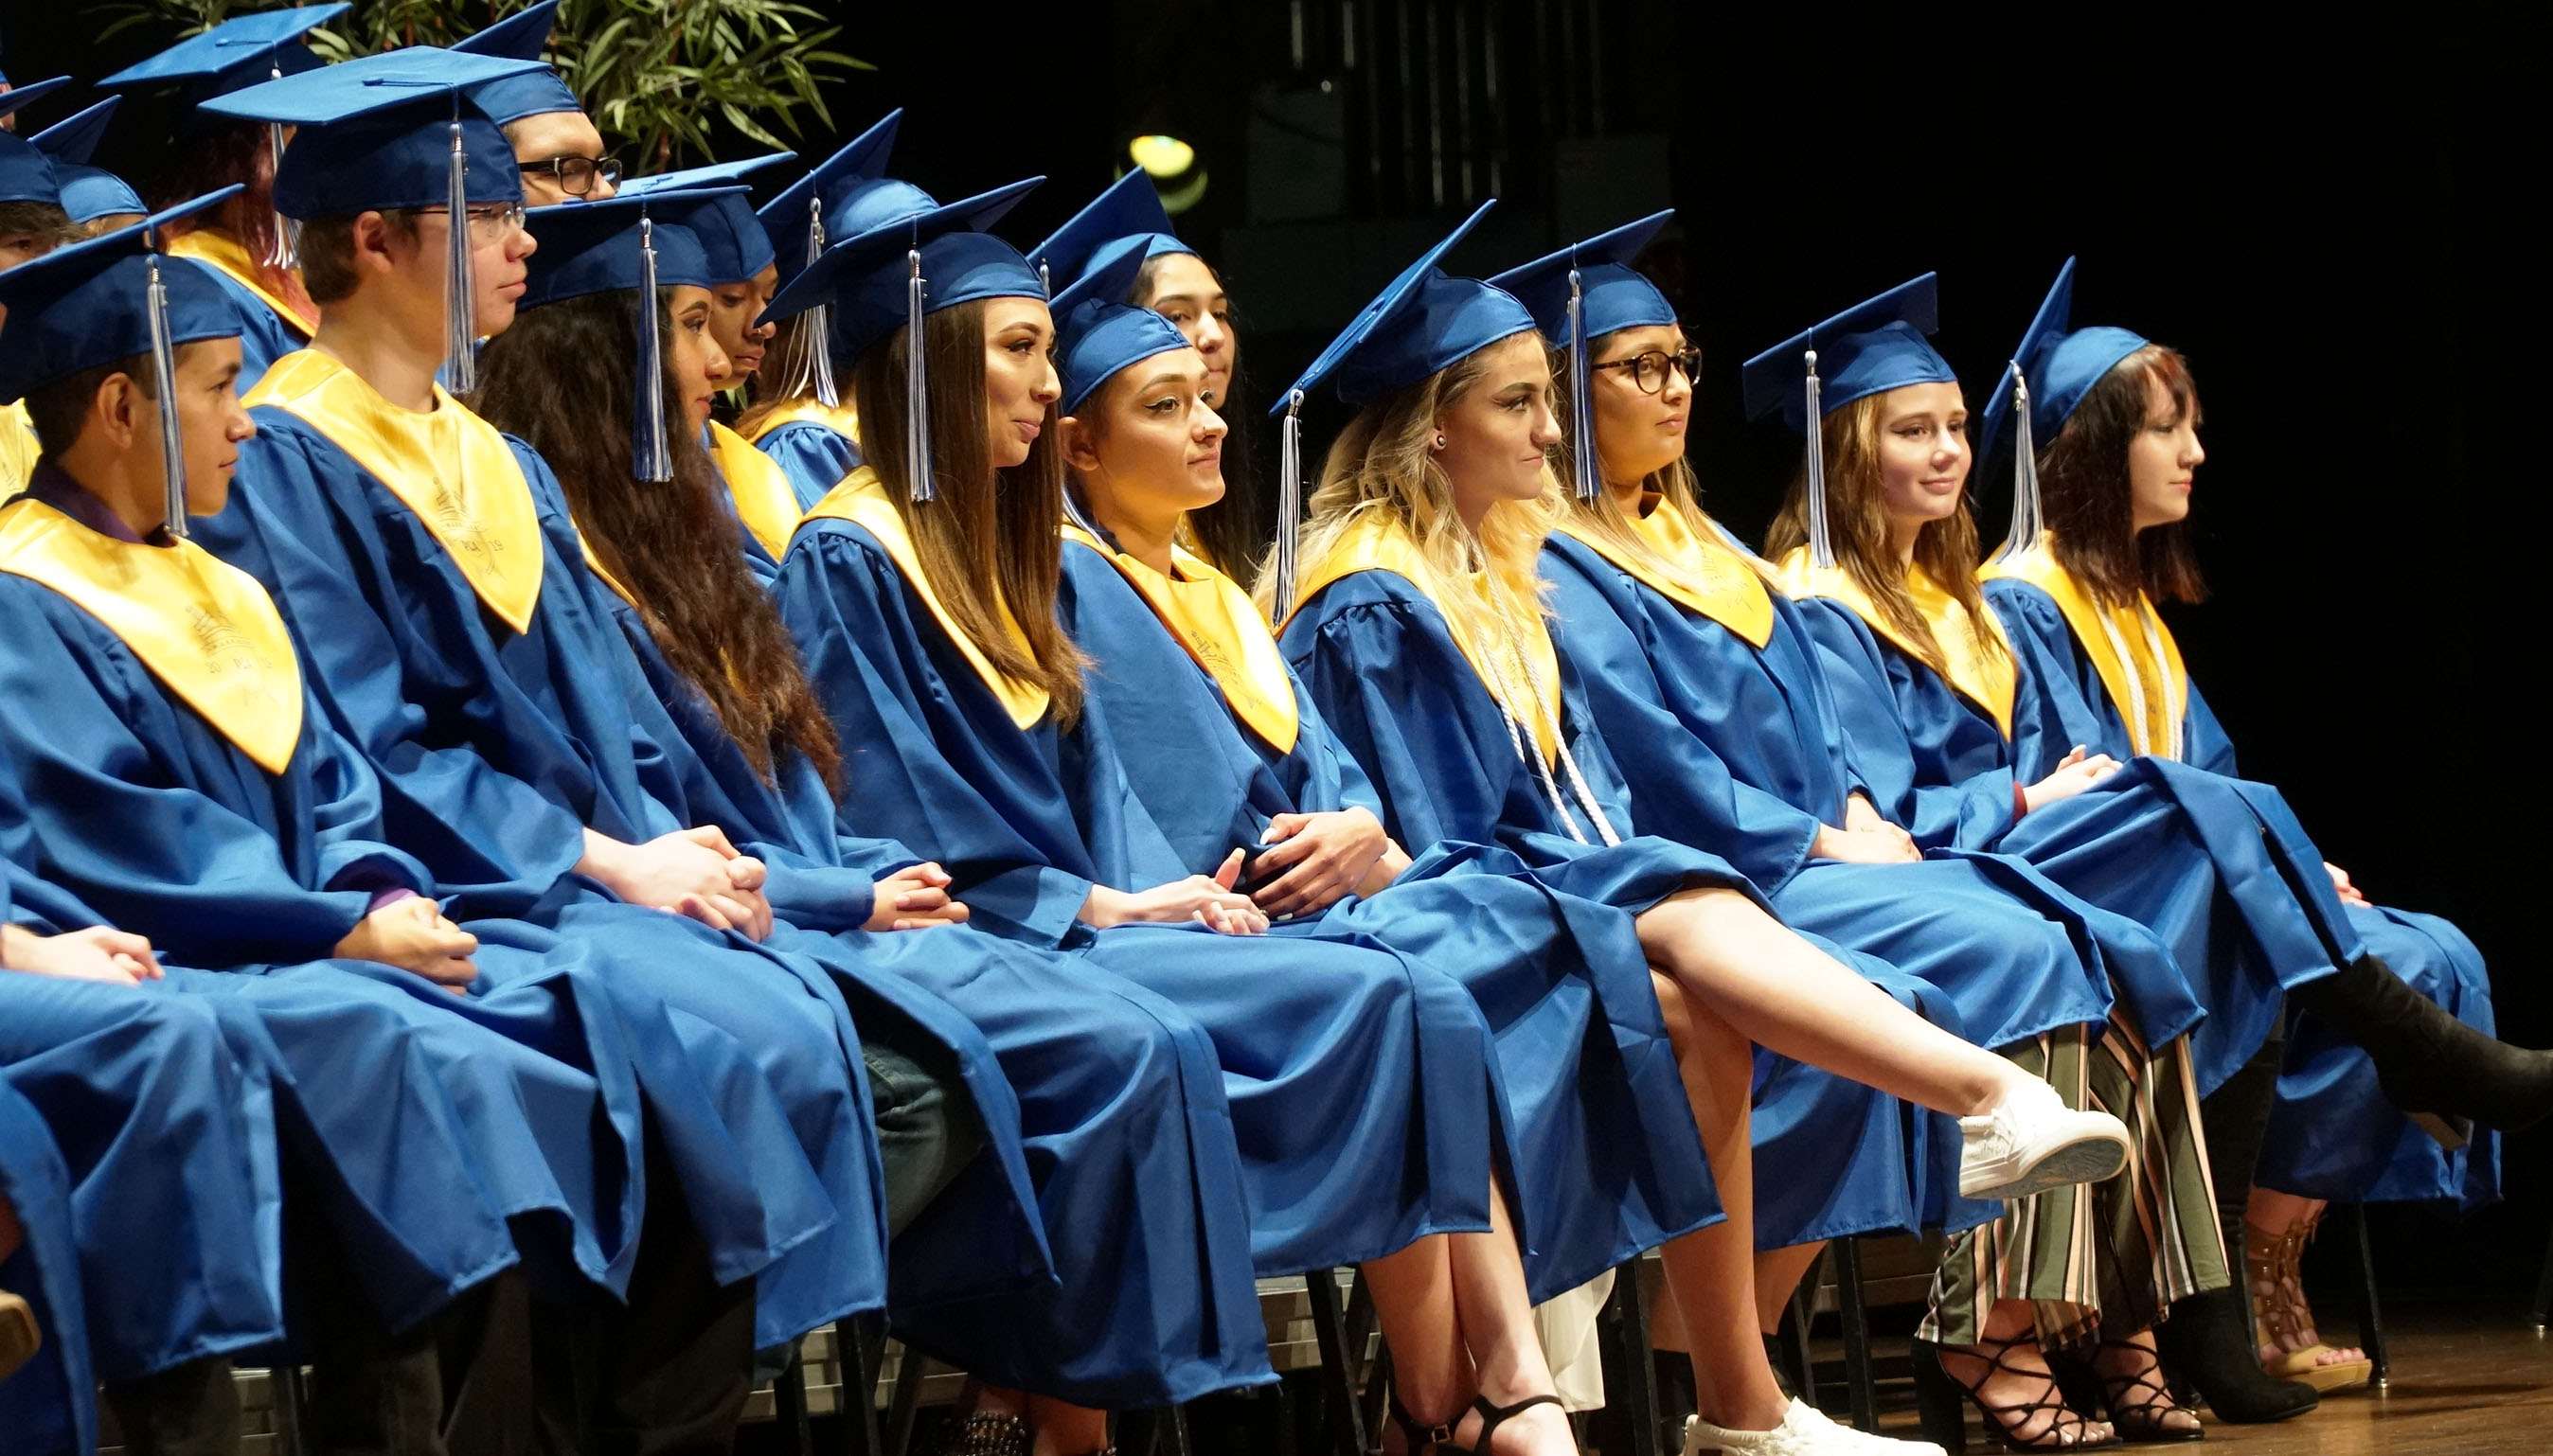 PCA graduates sitting down during the ceremony.